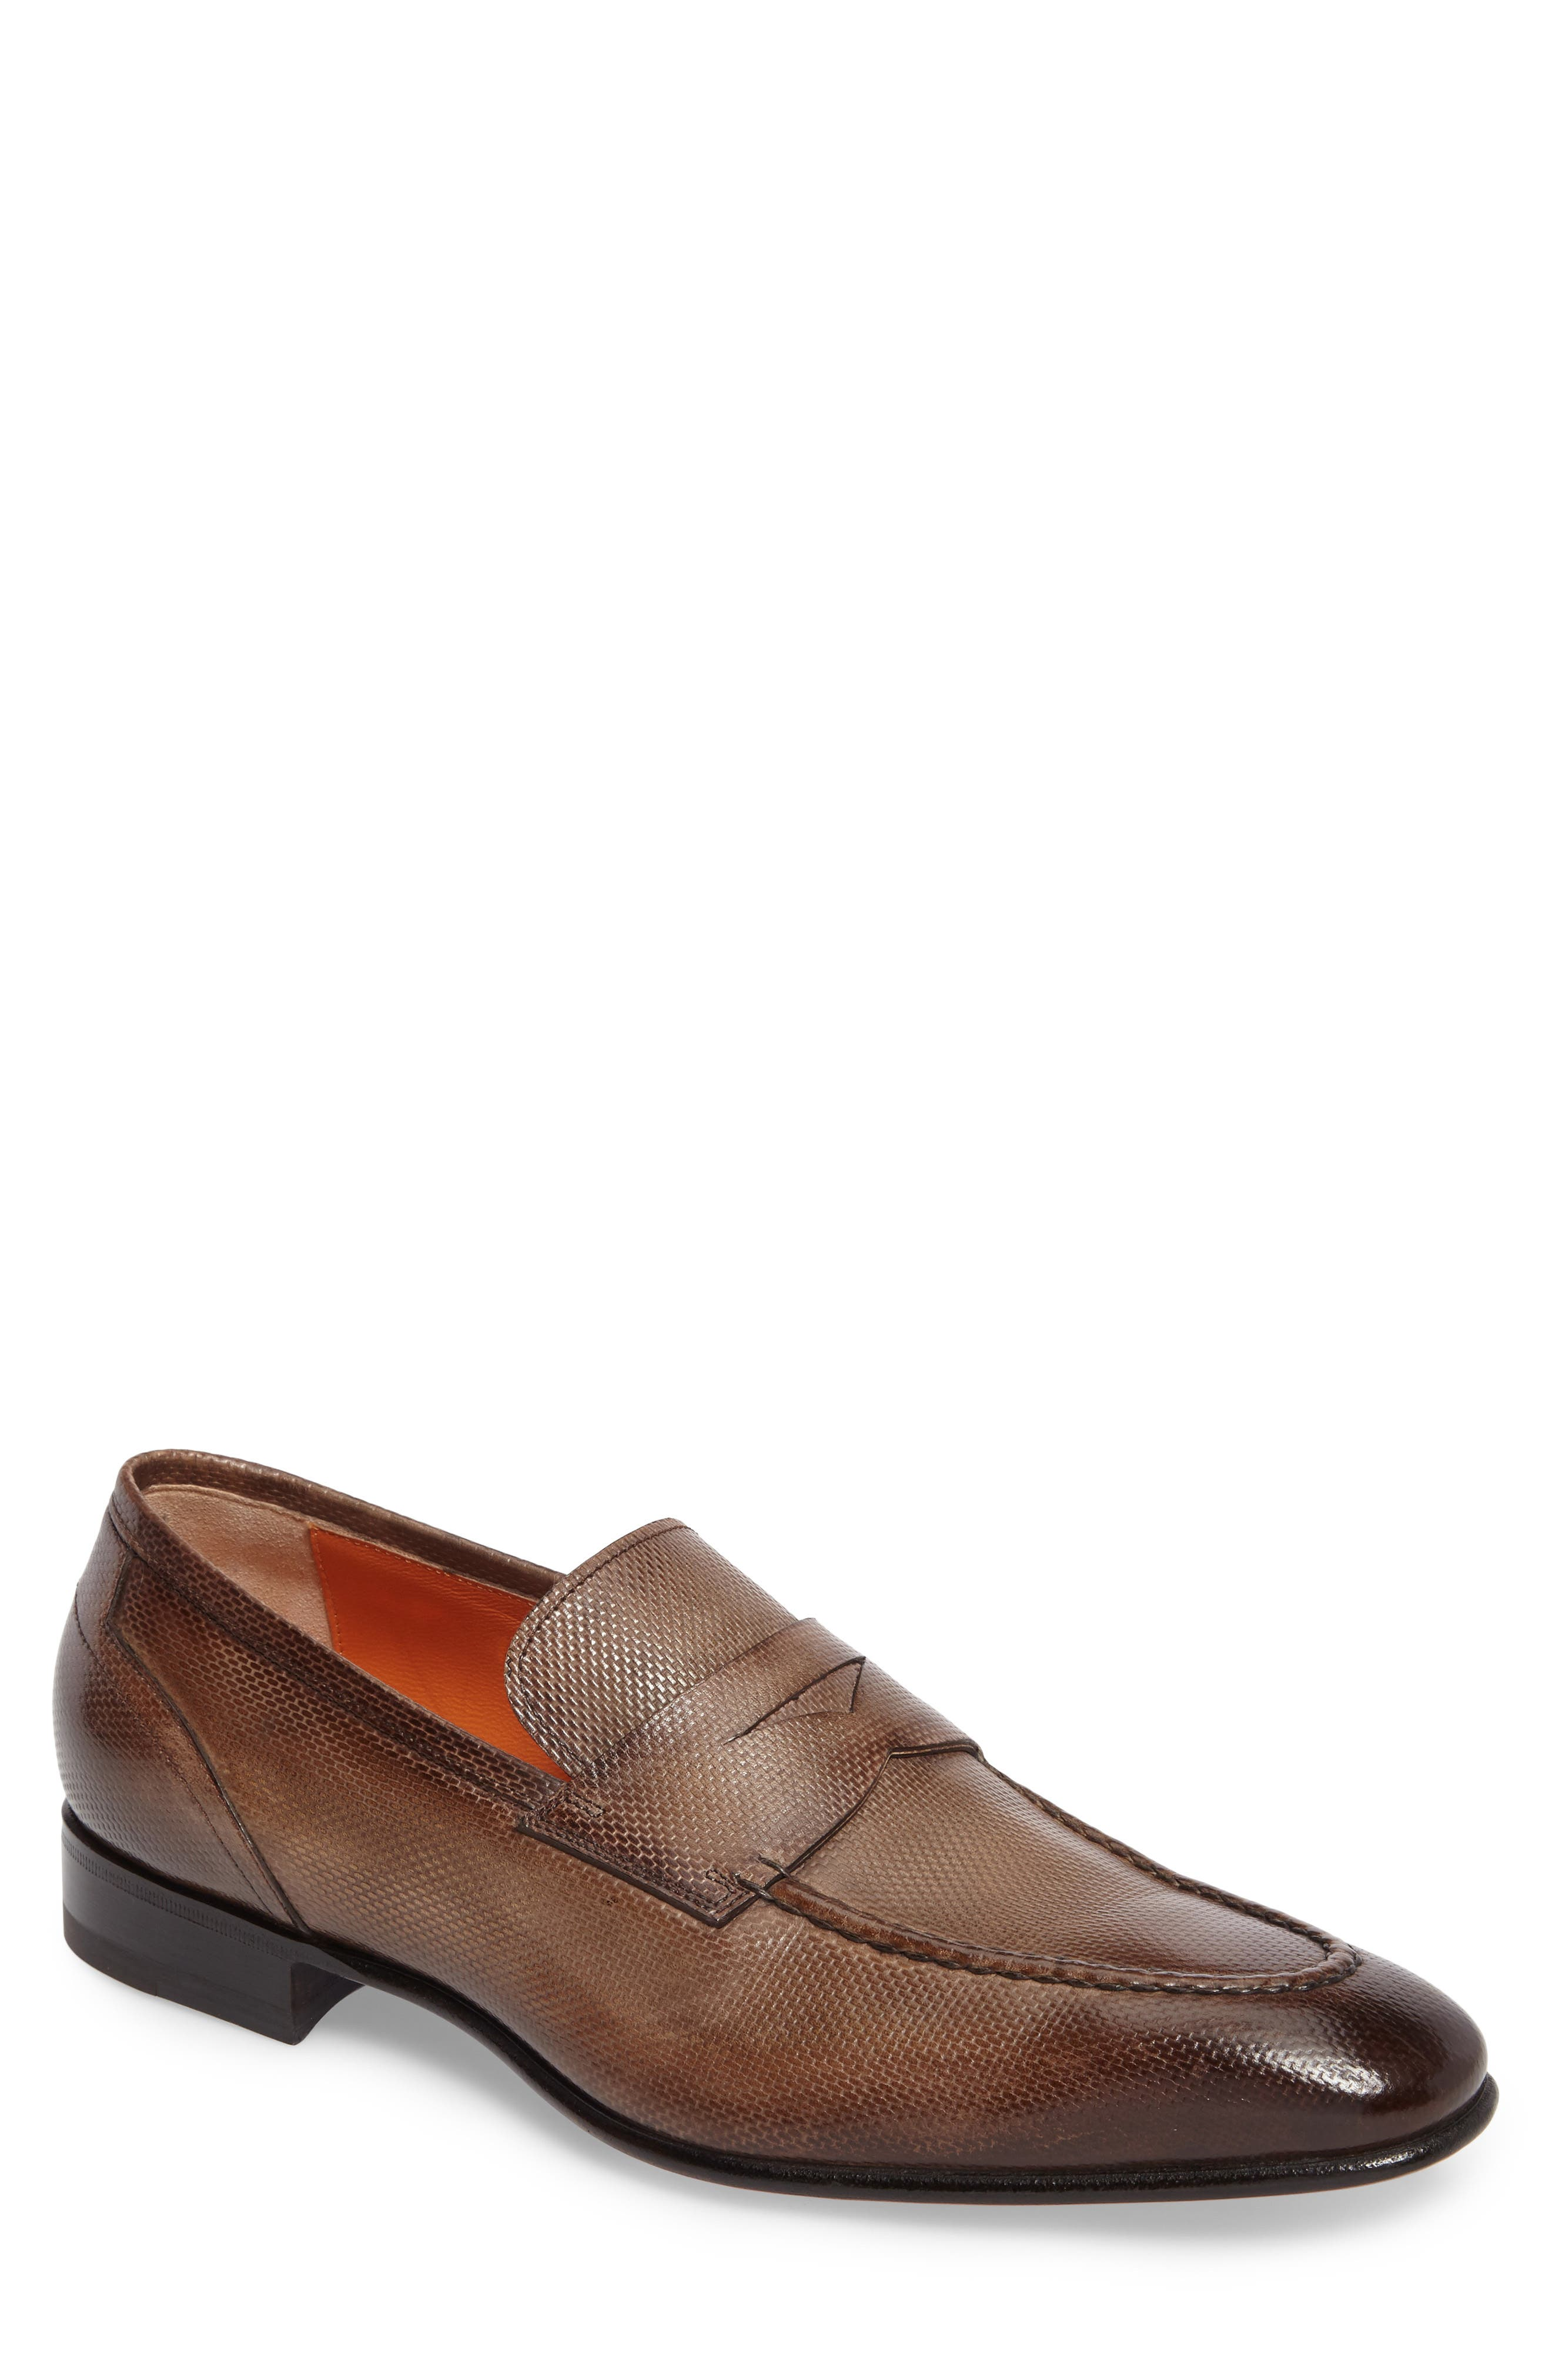 Felipe Penny Loafer,                         Main,                         color, Brown